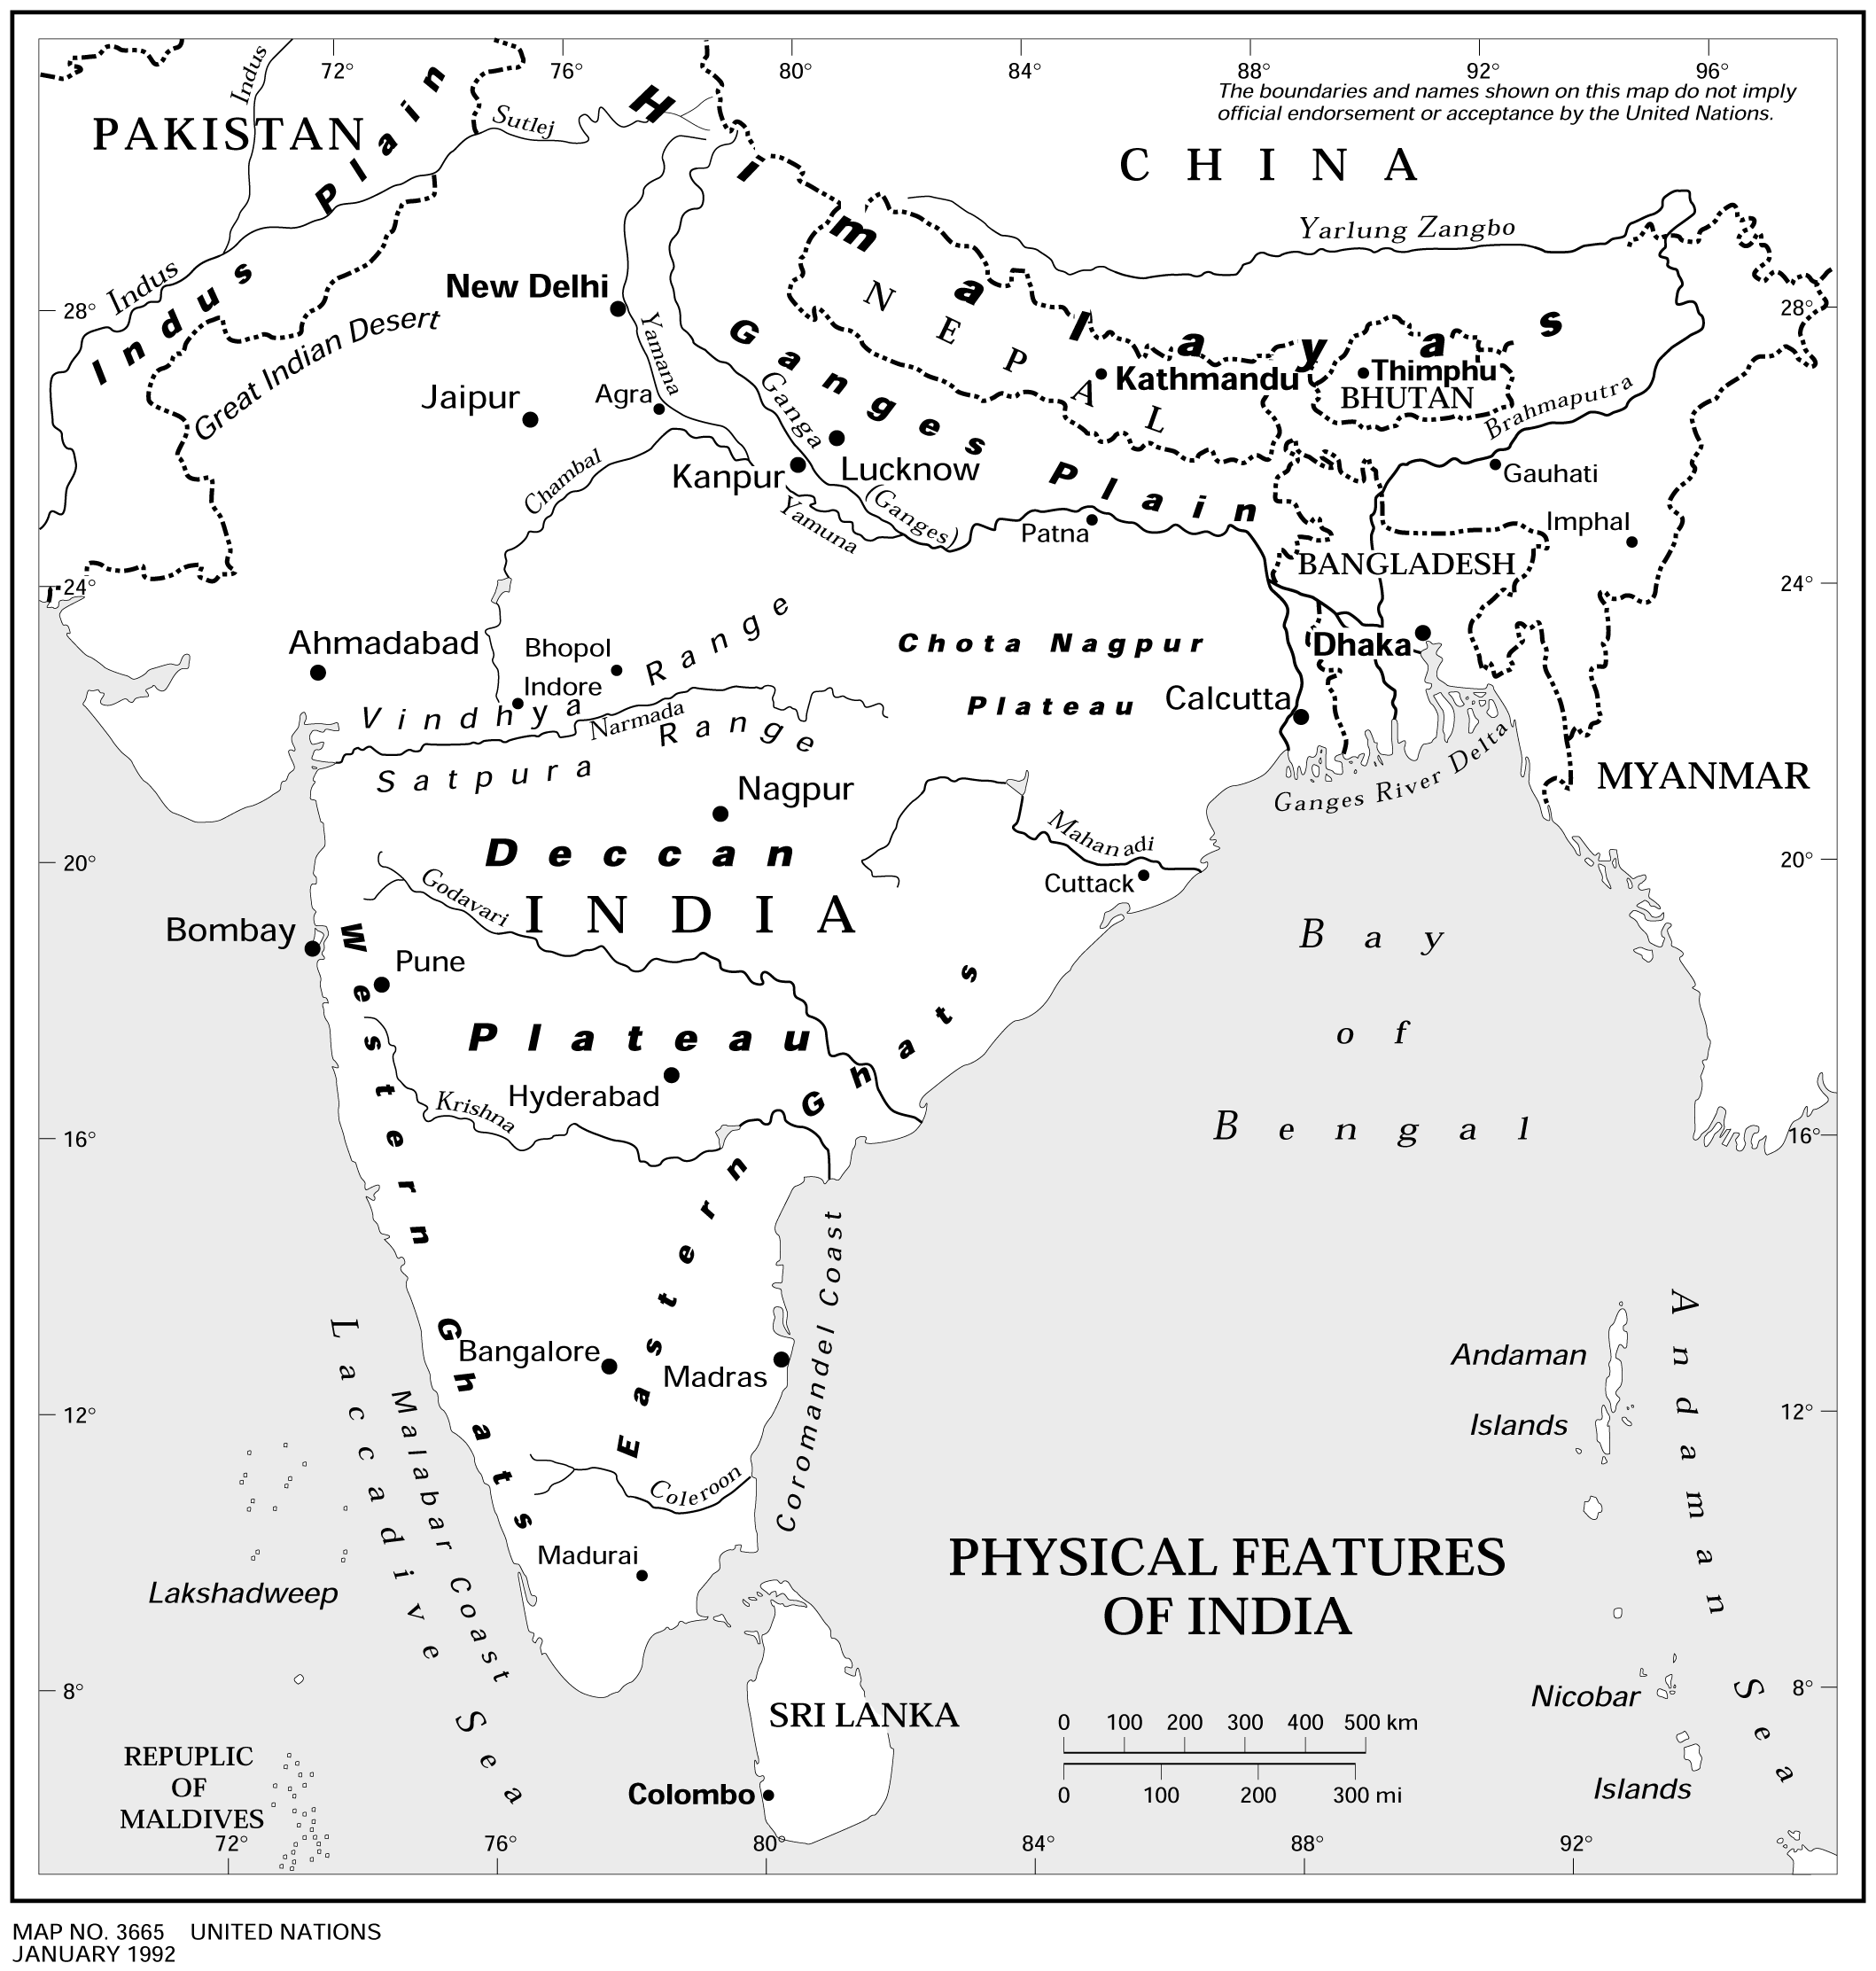 Physical Features of India large map